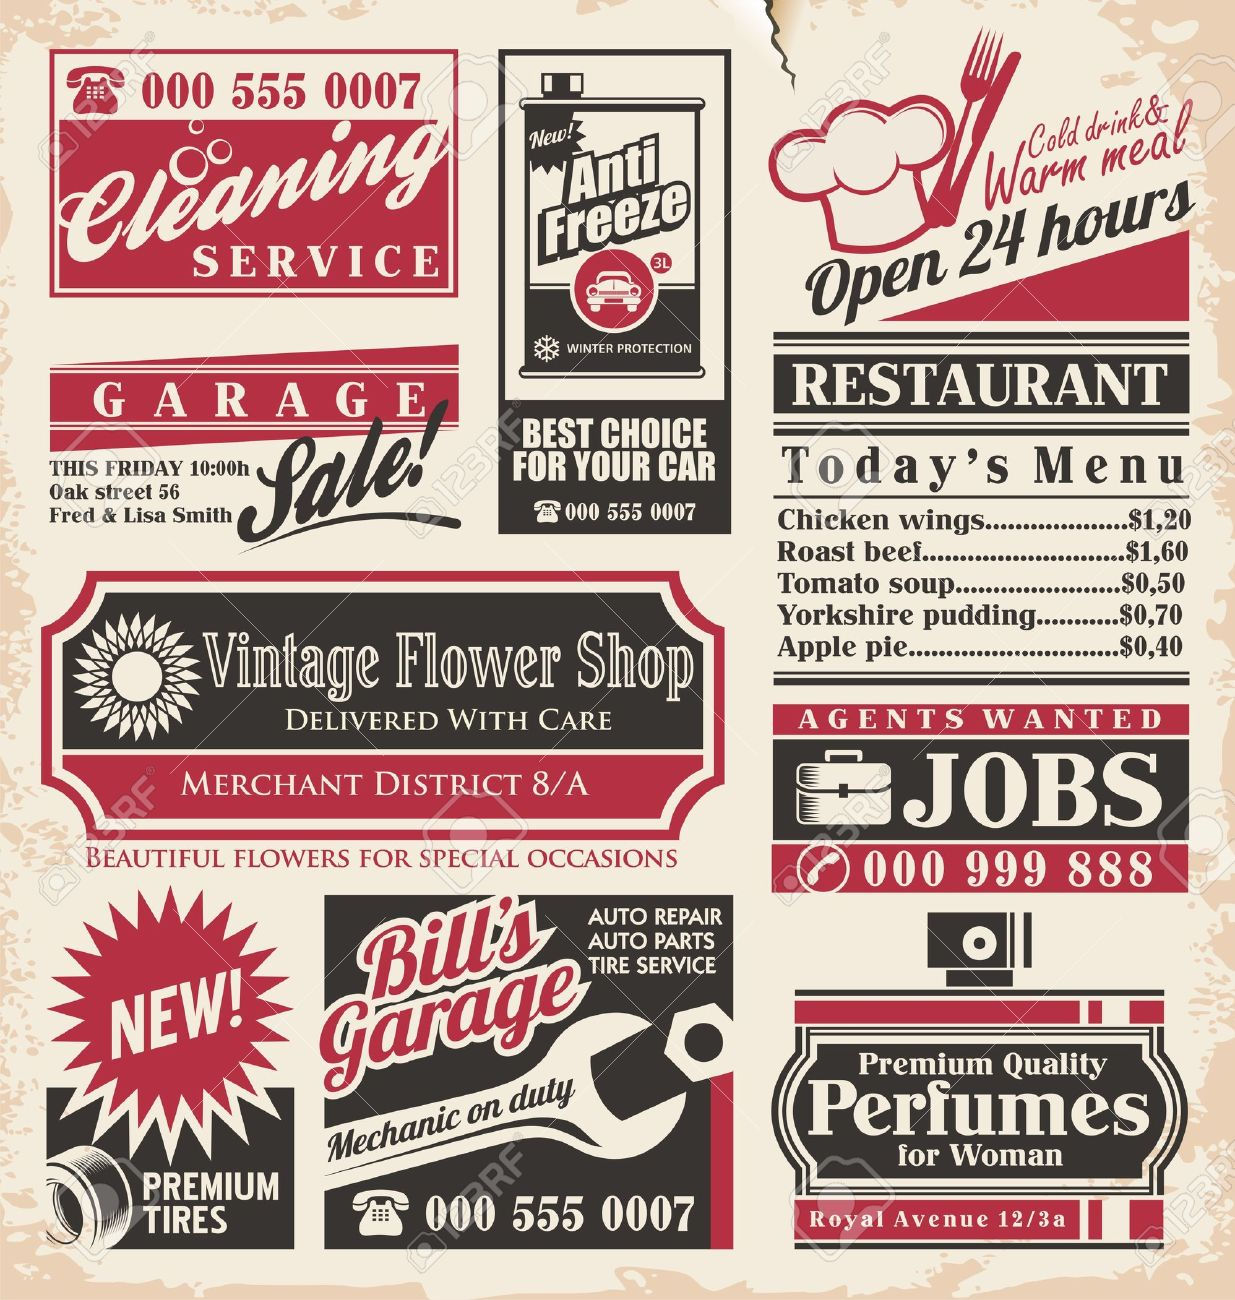 Retro newspaper ads design template collection of vintage retro newspaper ads design template collection of vintage advertisements old paper texture layout with promotional creative saigontimesfo